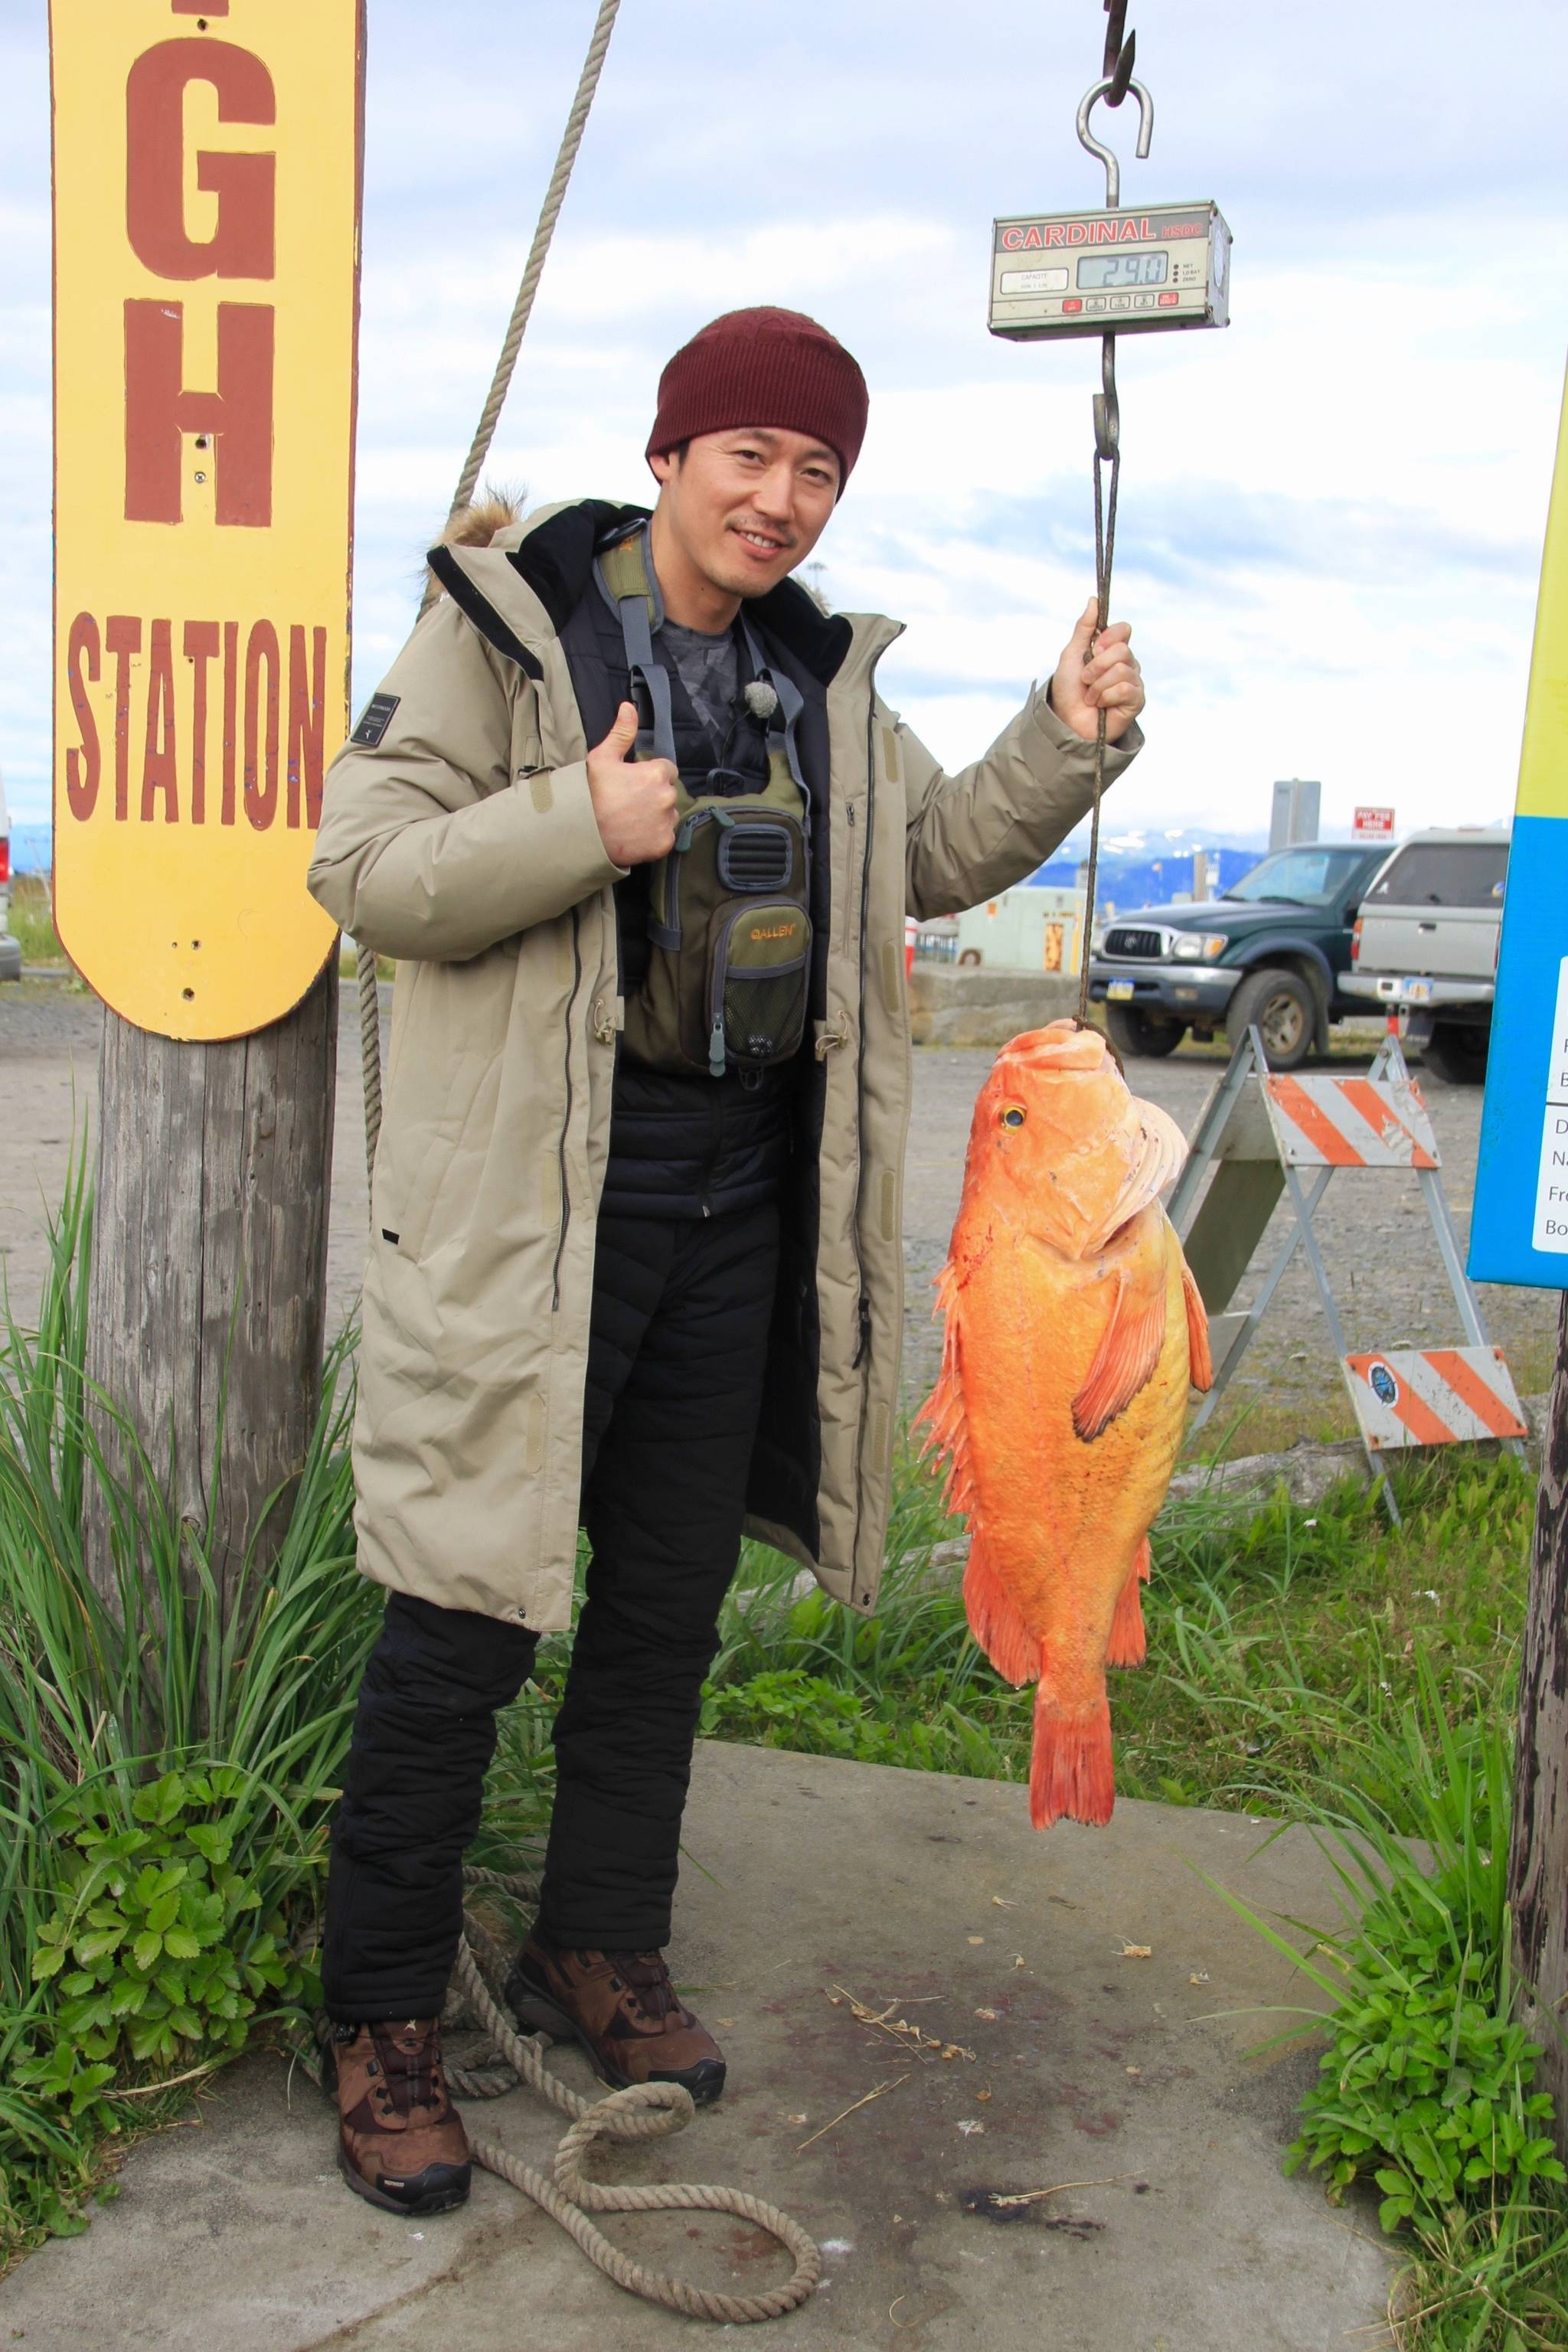 Korean pop star Jung Joon-young poses with a 21.4-pound yellow eye rockfish caught on July 30, 2018 while fishing with Captain Ross Hodek of Central Charters on the Spirit near Homer, Alaska. (Photo provided)